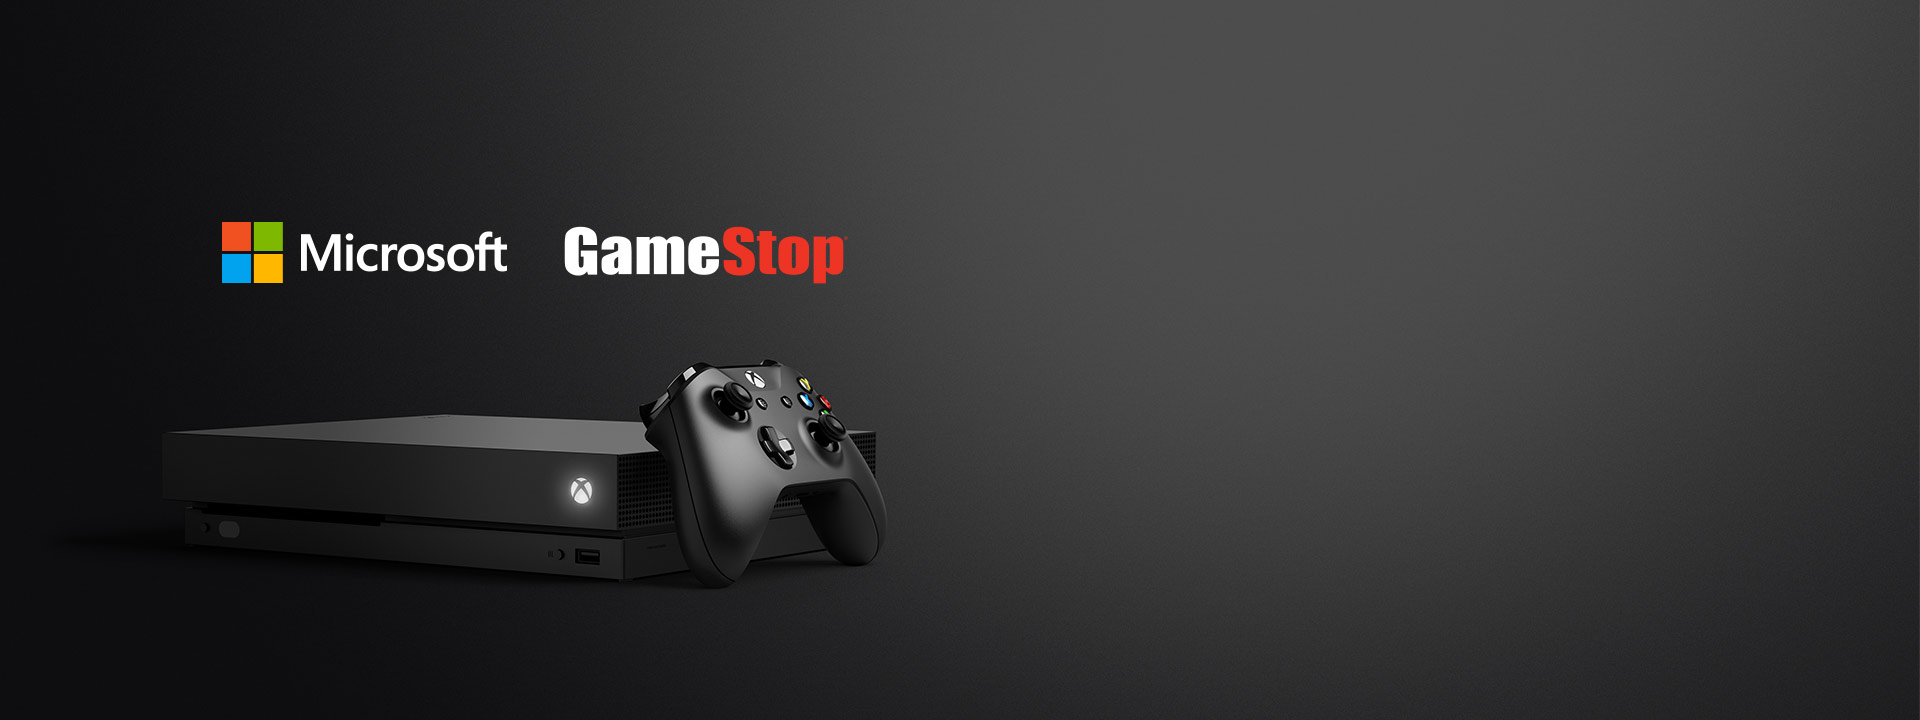 Microsoft and GameStop logo above and front view of an Xbox One X